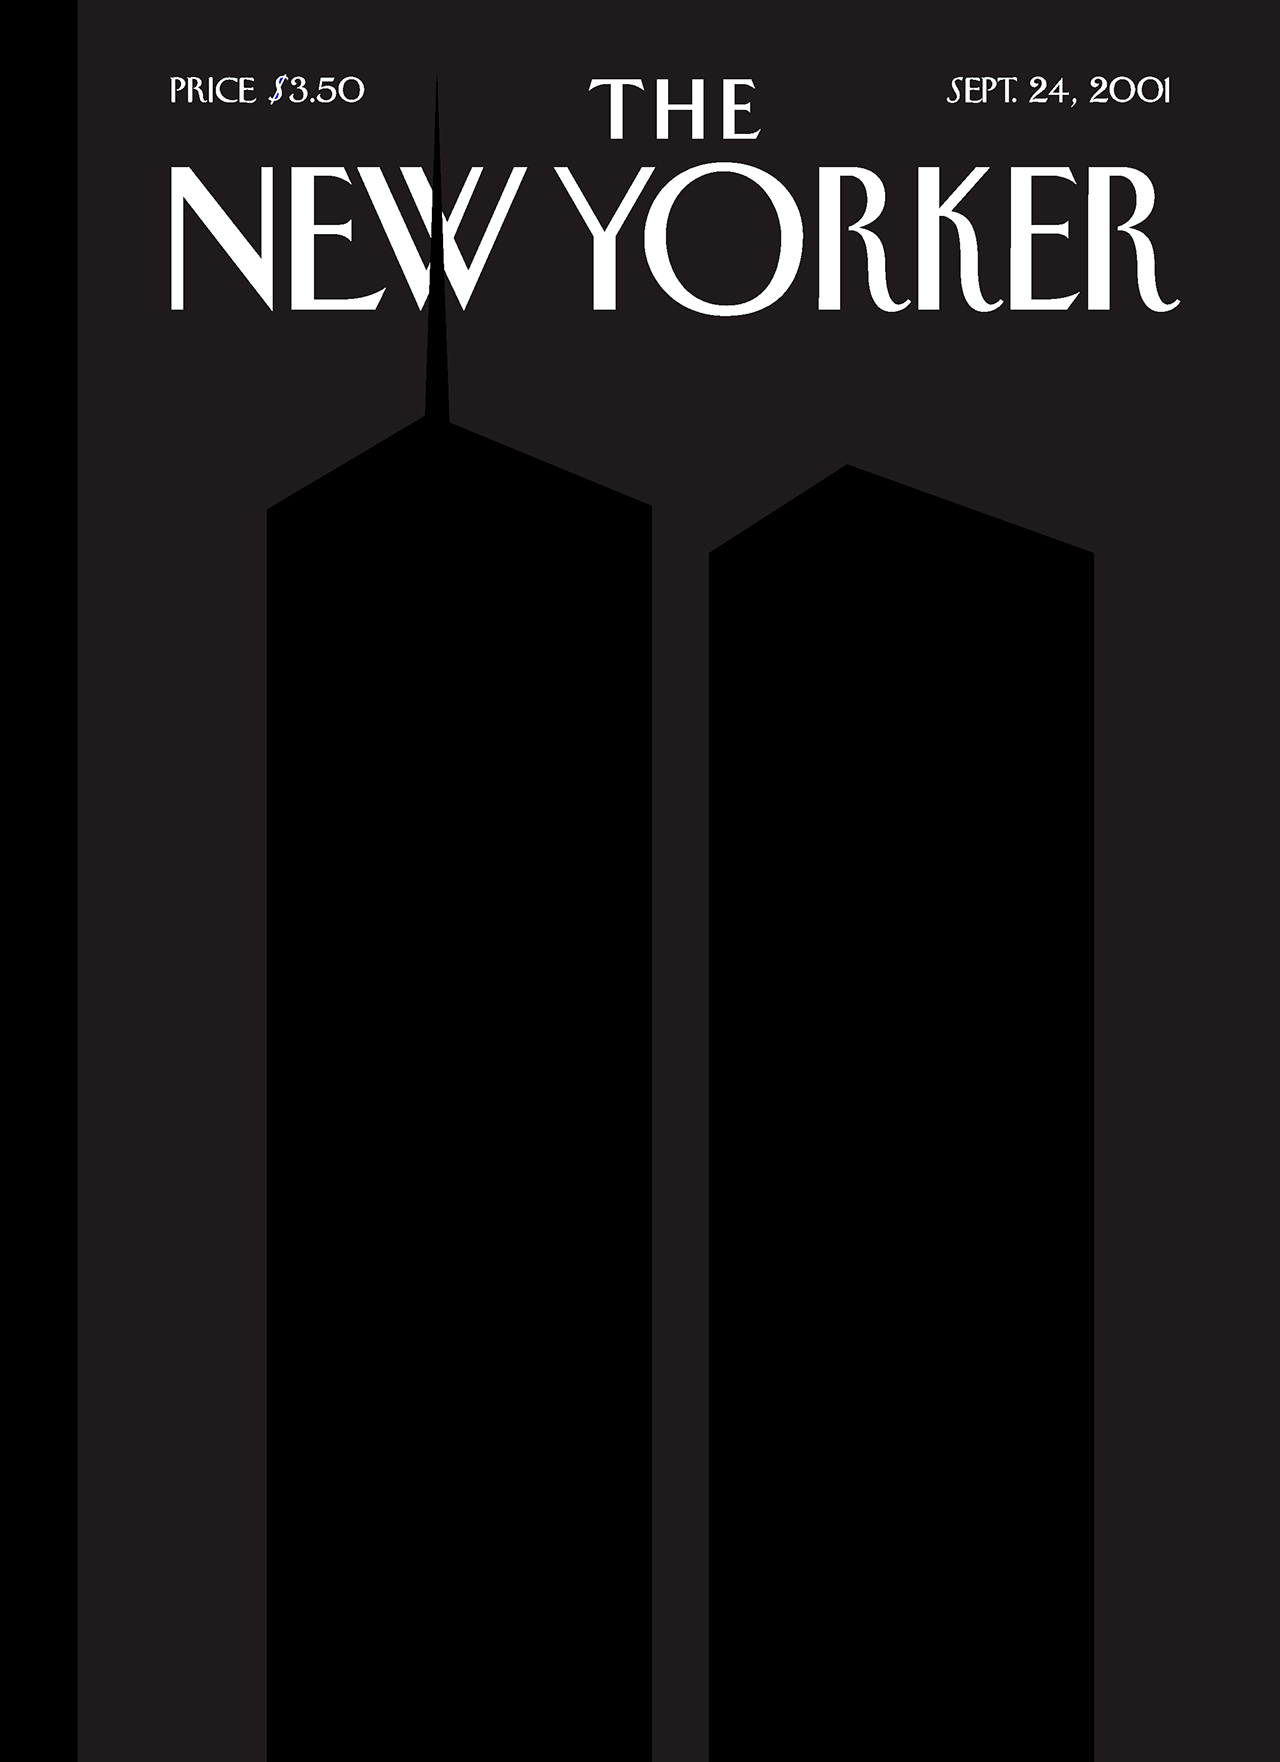 An illustrated cover of the New Yorker magazine released shortly after 9/11 depicts a silhouetted Twin Towers on a dark gray background.